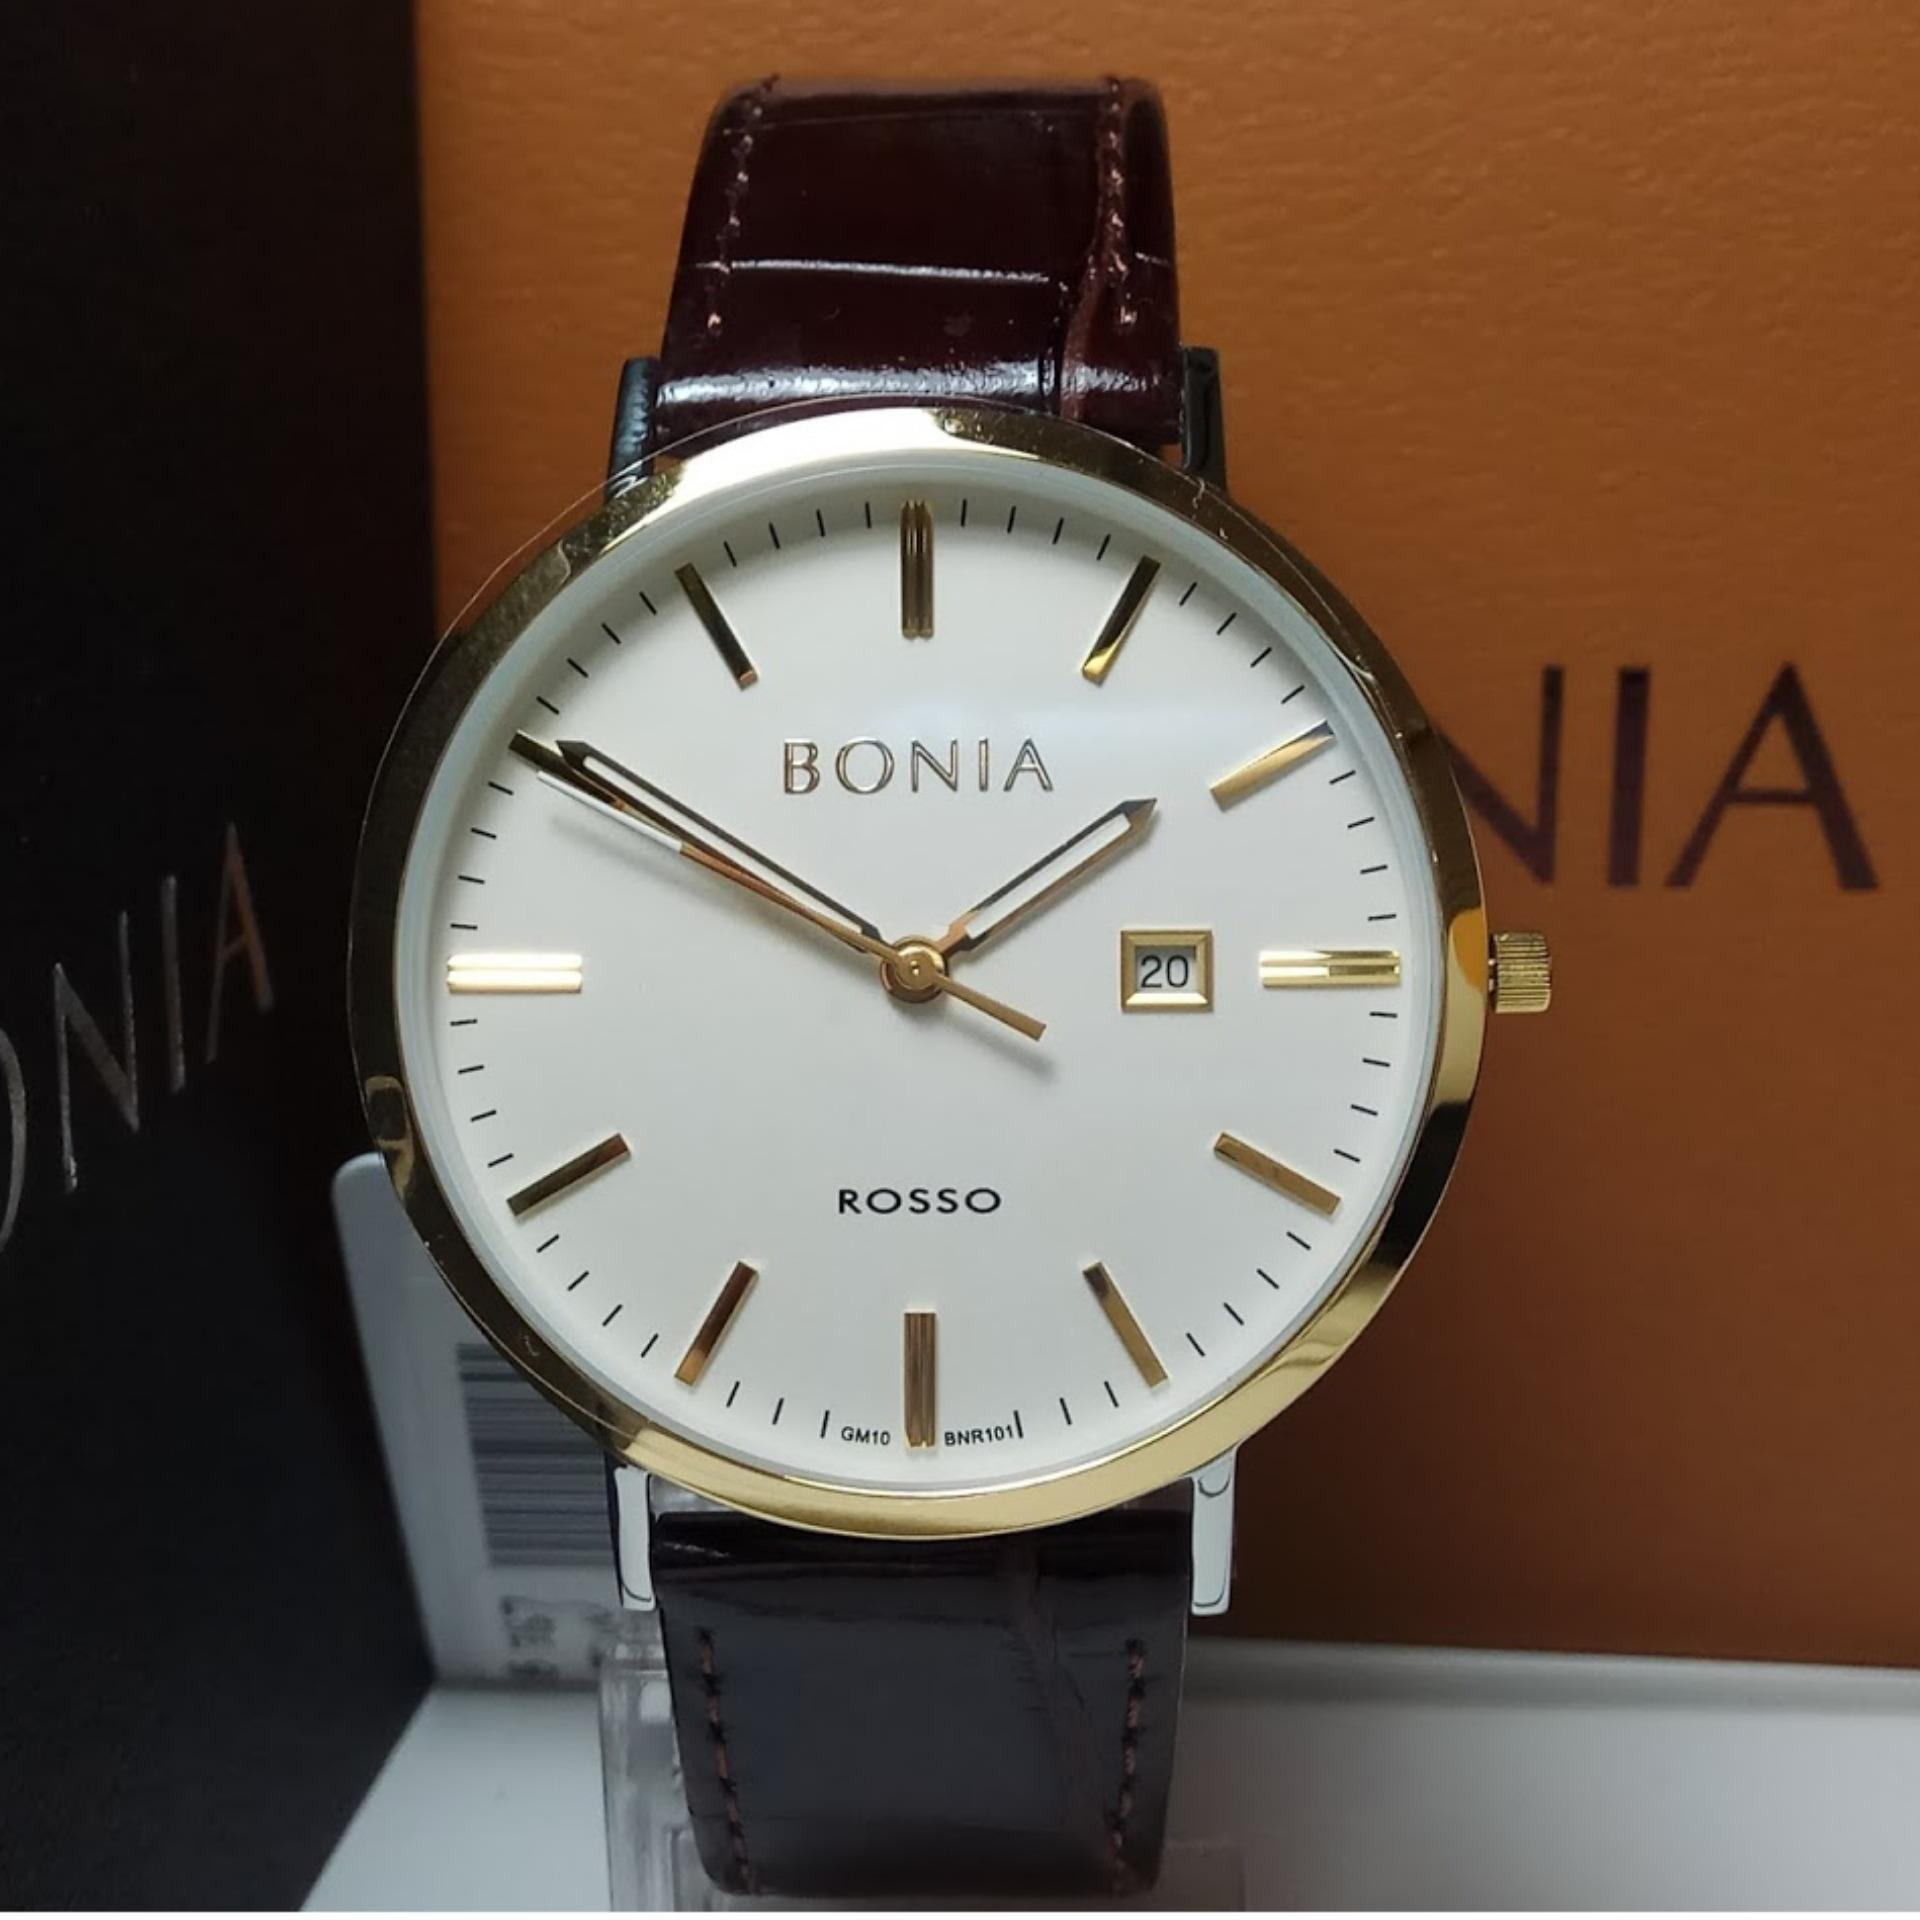 Bonia Rosso B10101 Jam Tangan Pria Silver Kombinasi Gold Ring B10060 1153 Bnr101 1212 Stainless Steel Leather